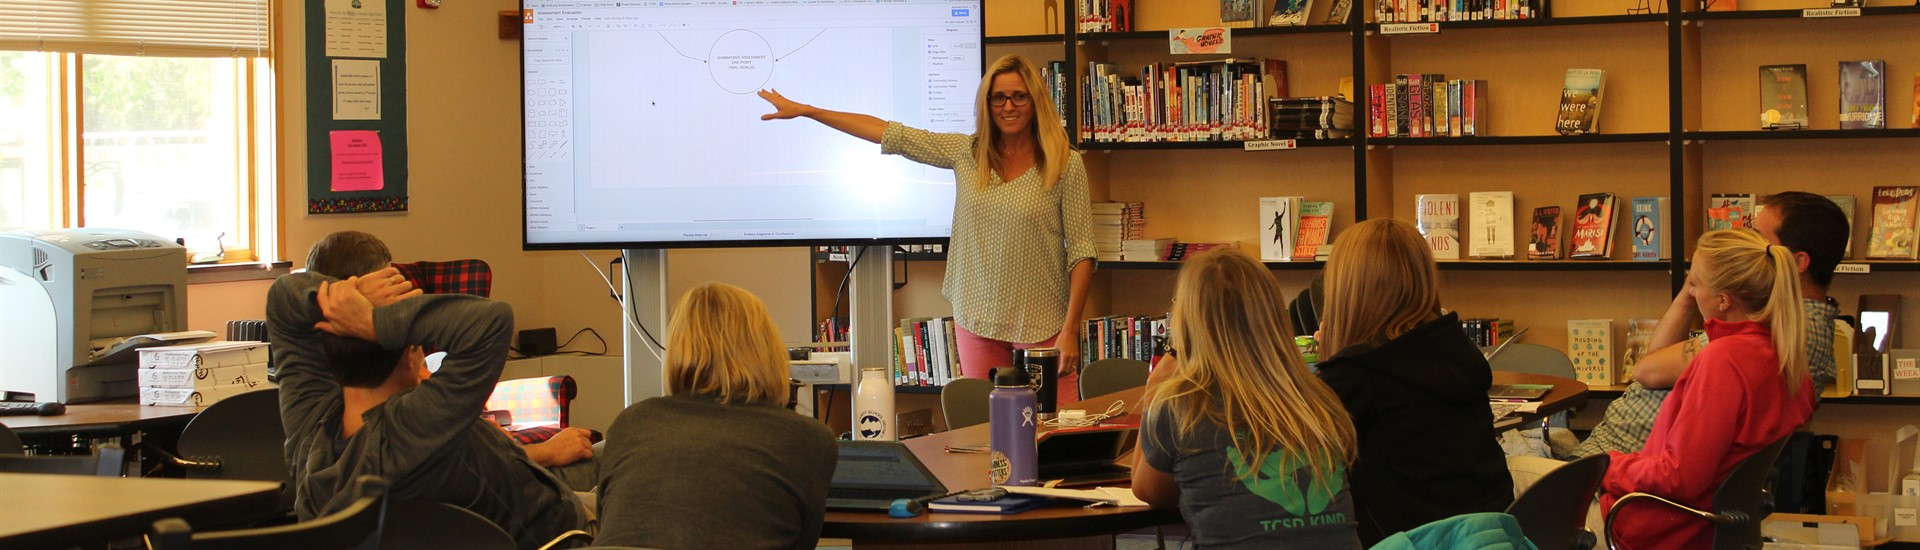 Teachers participate in training preparing for first day of school